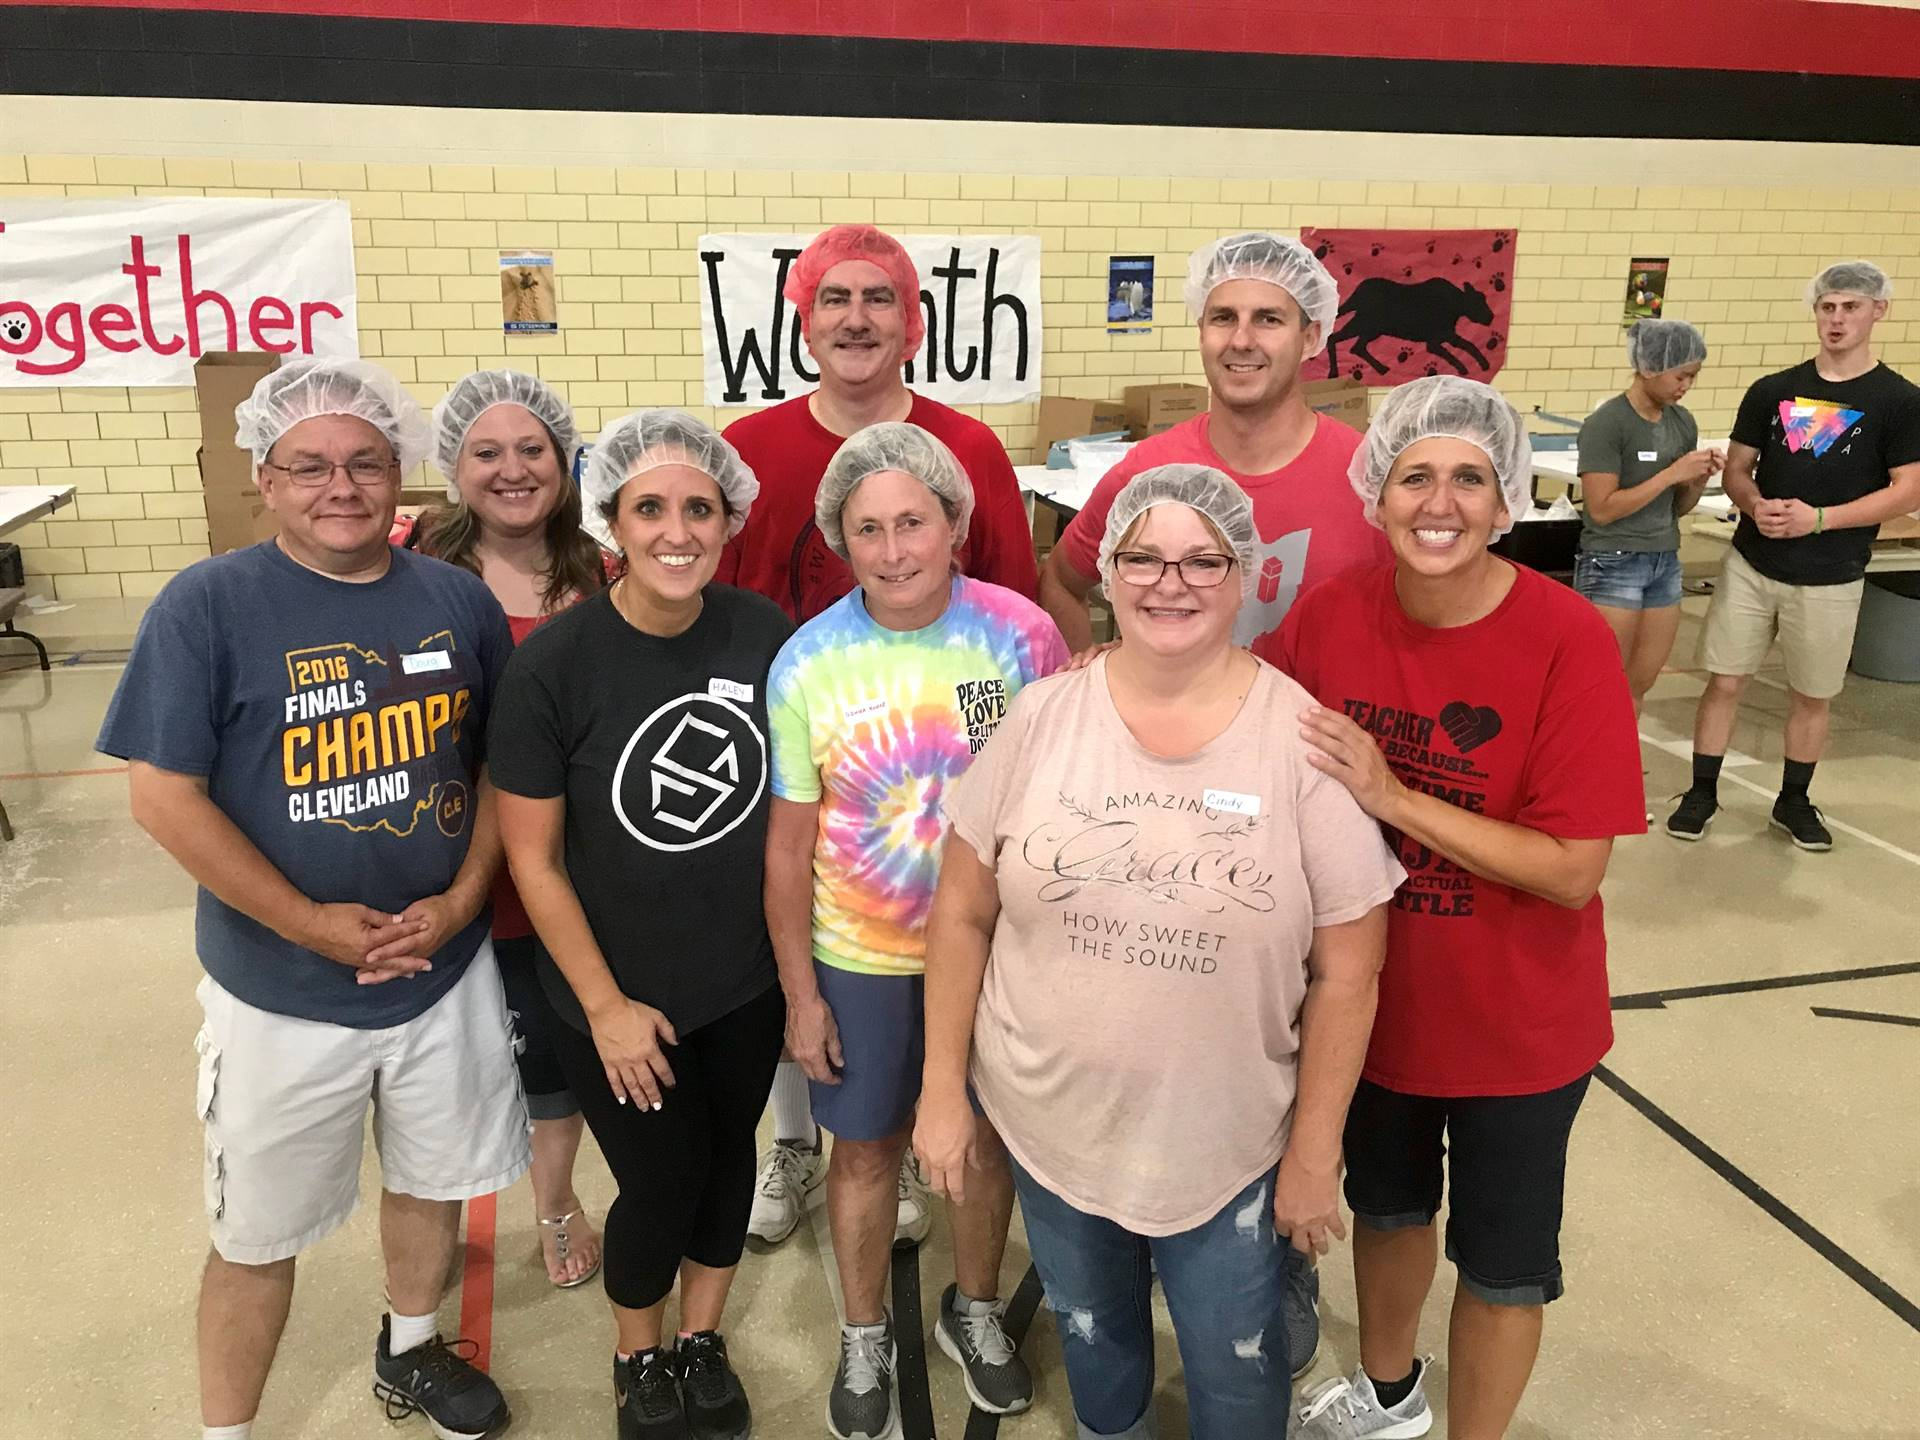 N.E.S. staff rocking the hair nets at the Feed My Starving Children packing event. We Roar. Together